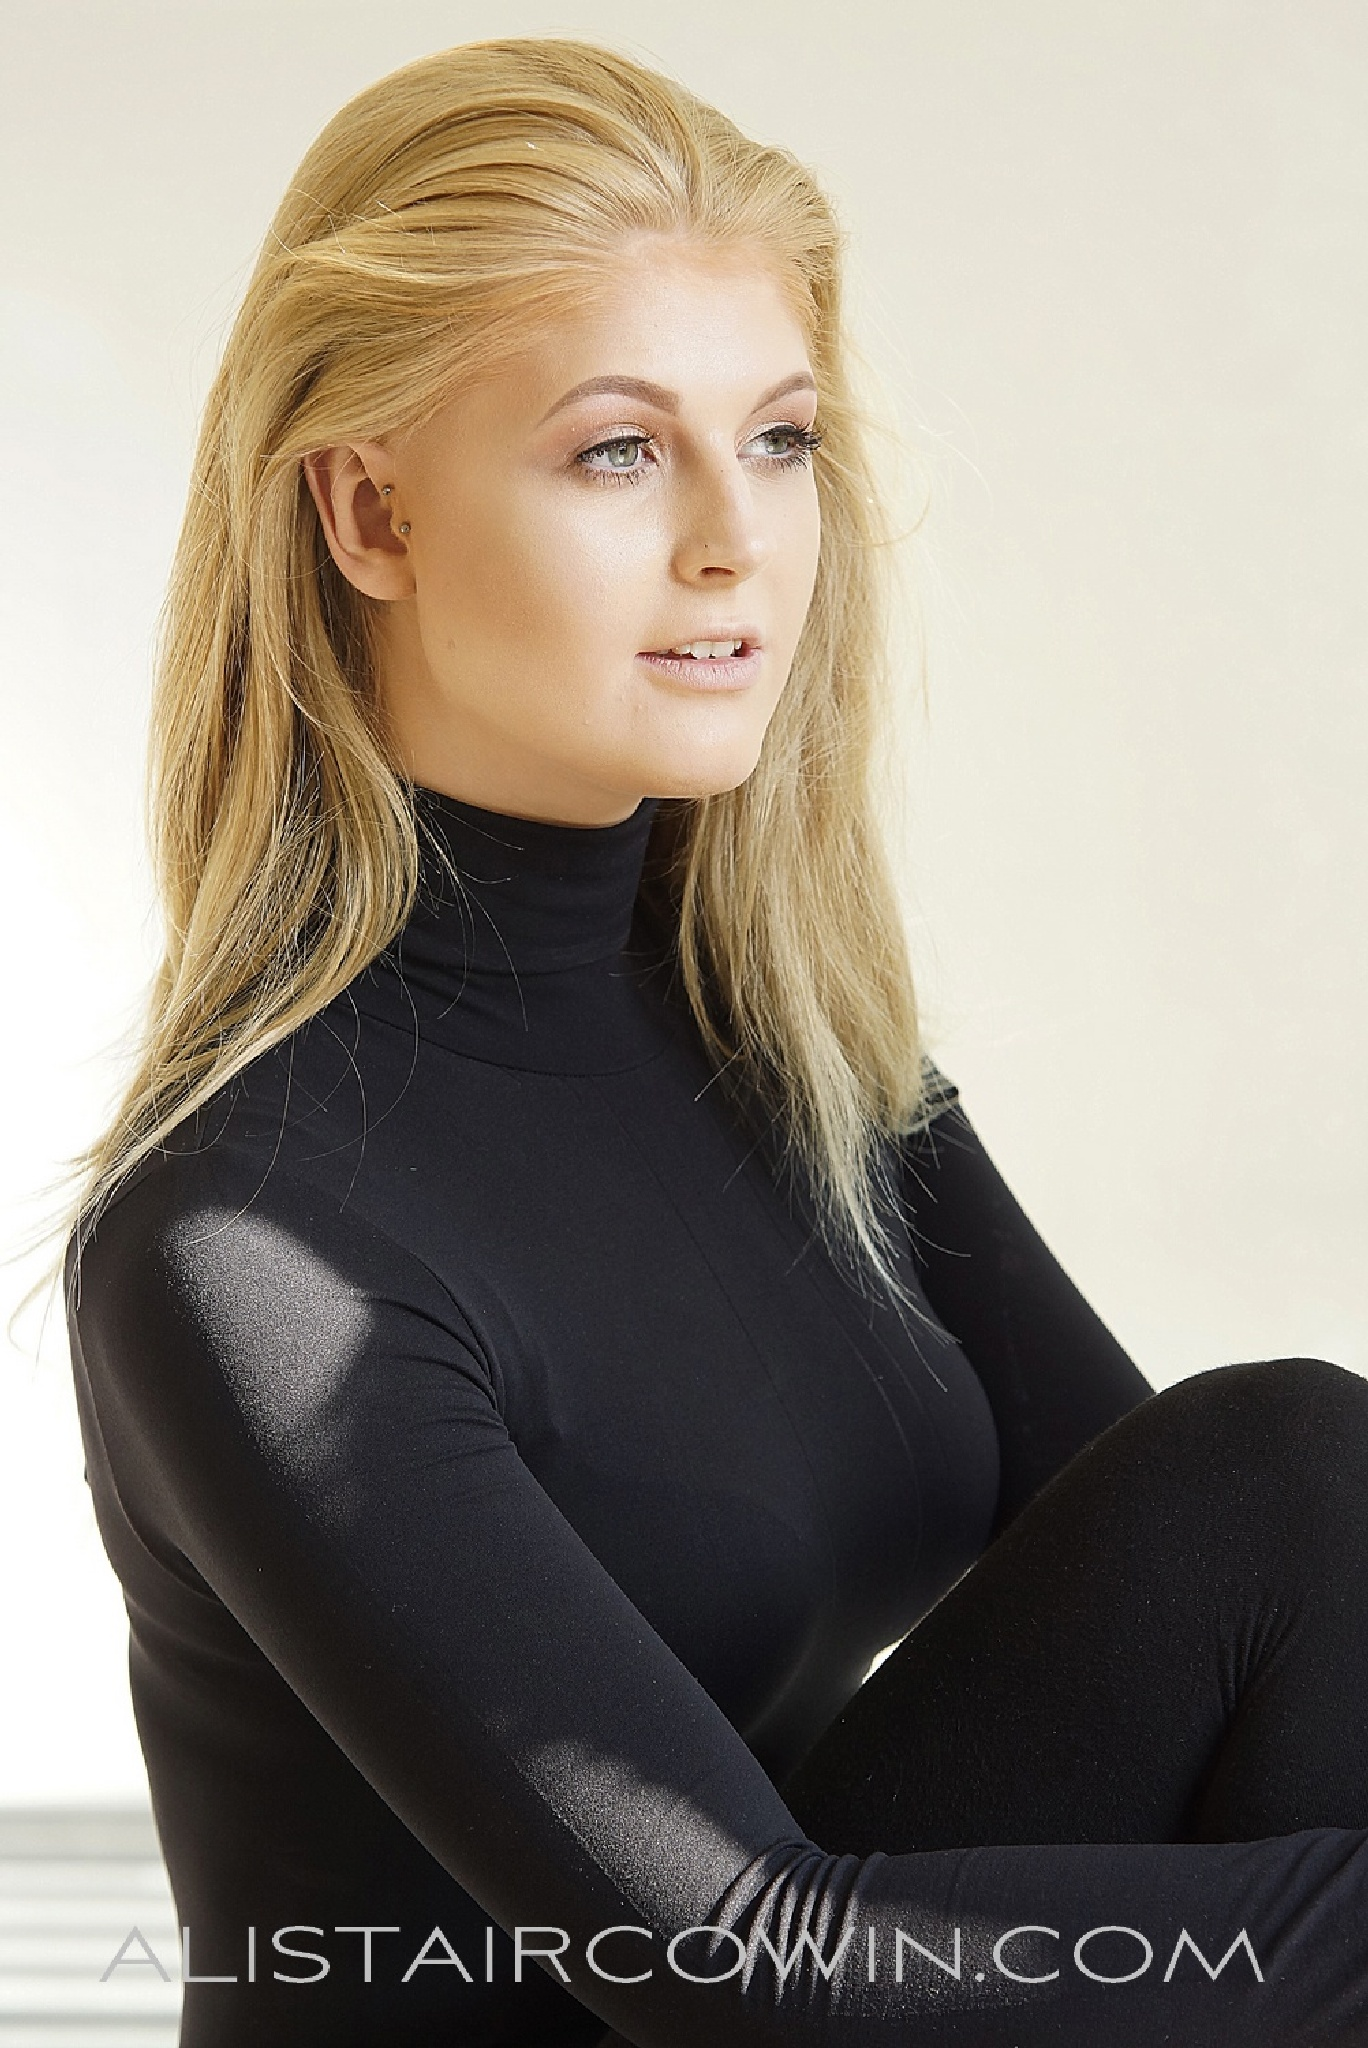 Hannah L by Alistair Cowin